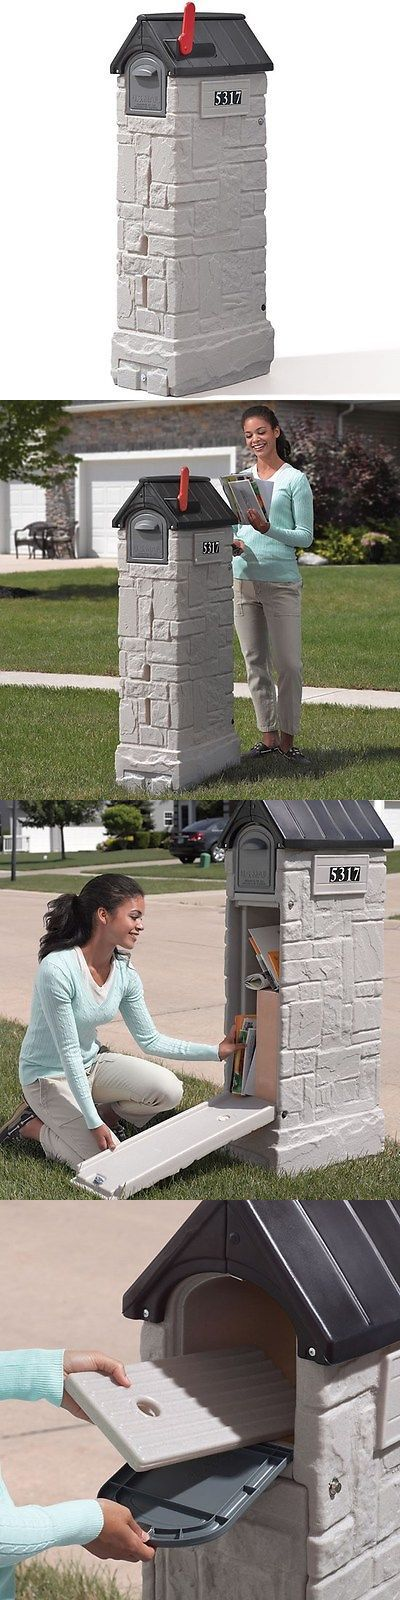 Step 2 52344: Step2 Mailmaster Storemore Mailbox Locking Hidden Package Storage Letter Post -> BUY IT NOW ONLY: $129.99 on eBay!